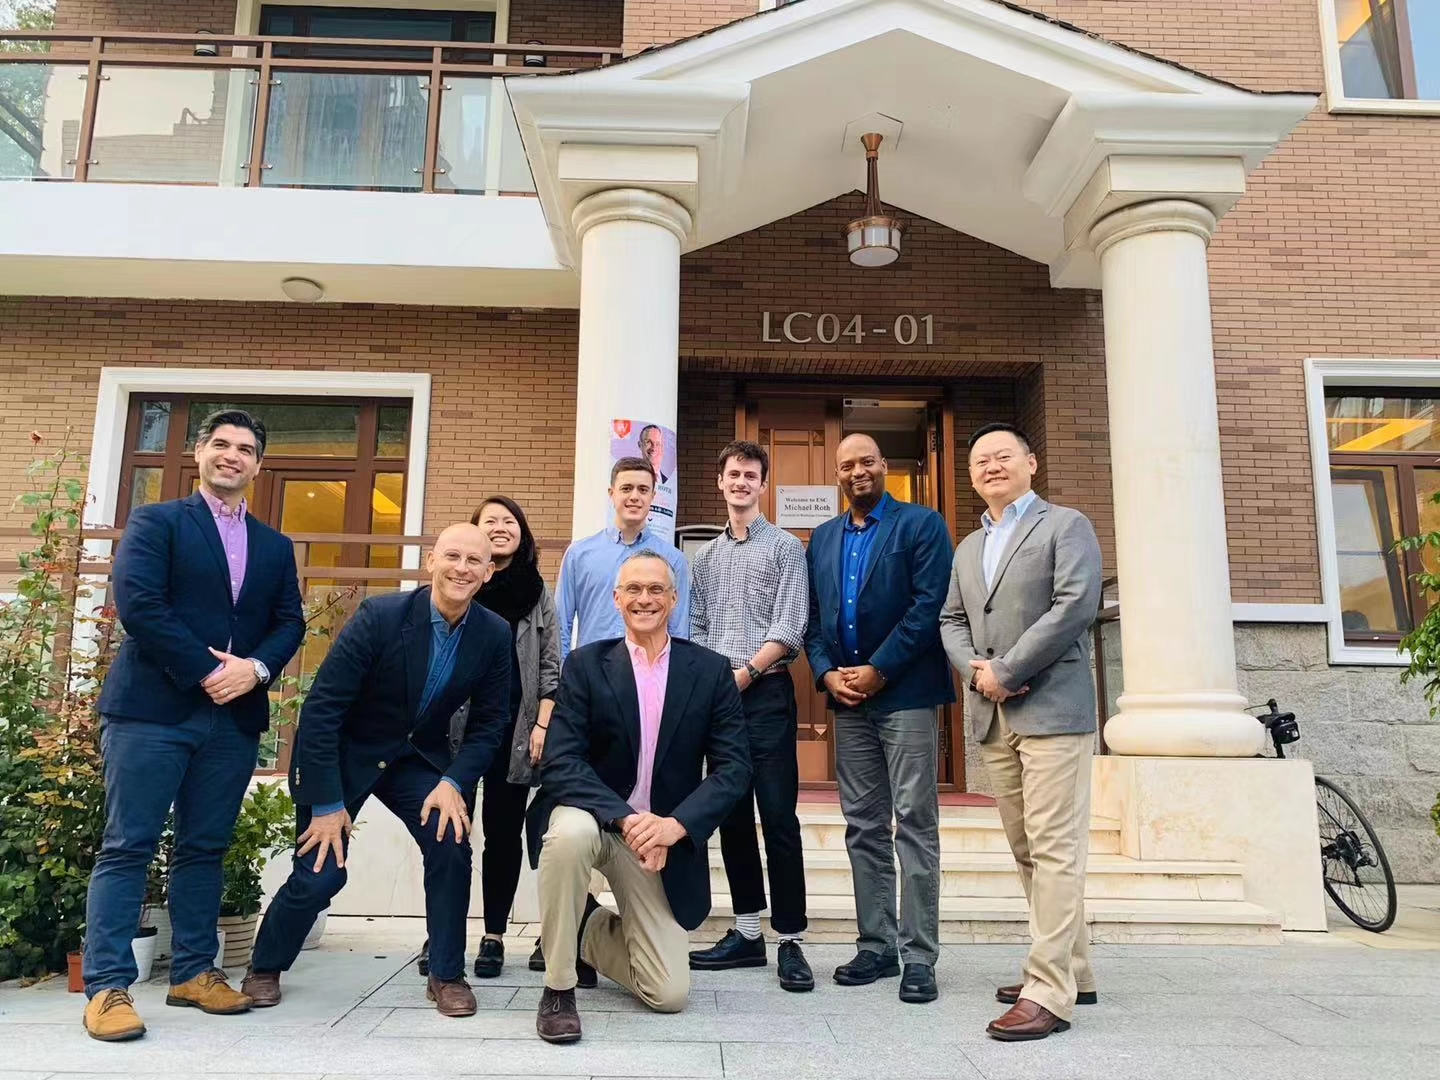 President Roth and others visited Elite Scholars of China, founded by Tomer Rothschild '94 (front center, to the left of Roth).